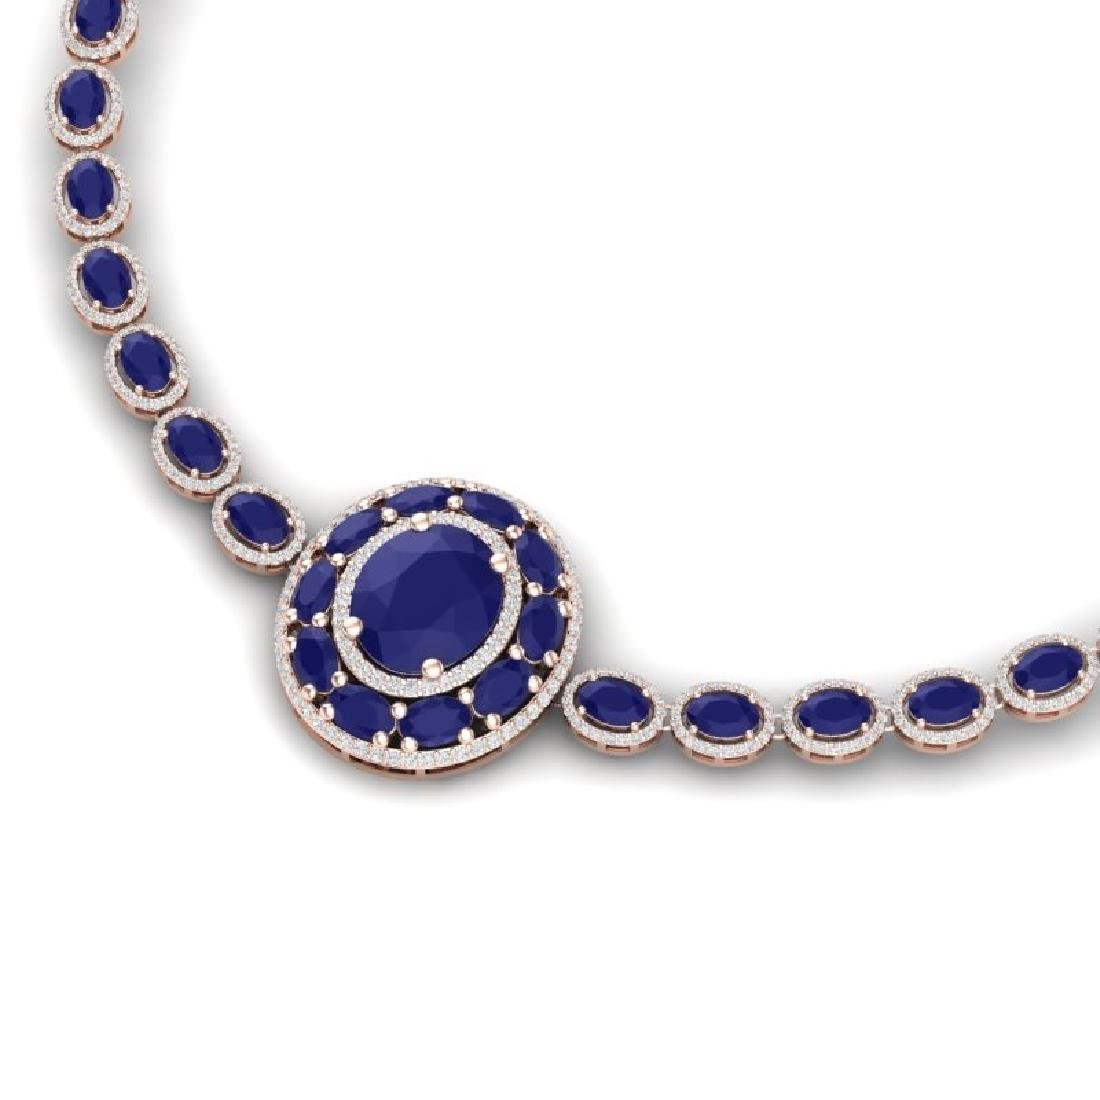 43.54 CTW Royalty Sapphire & VS Diamond Necklace 18K